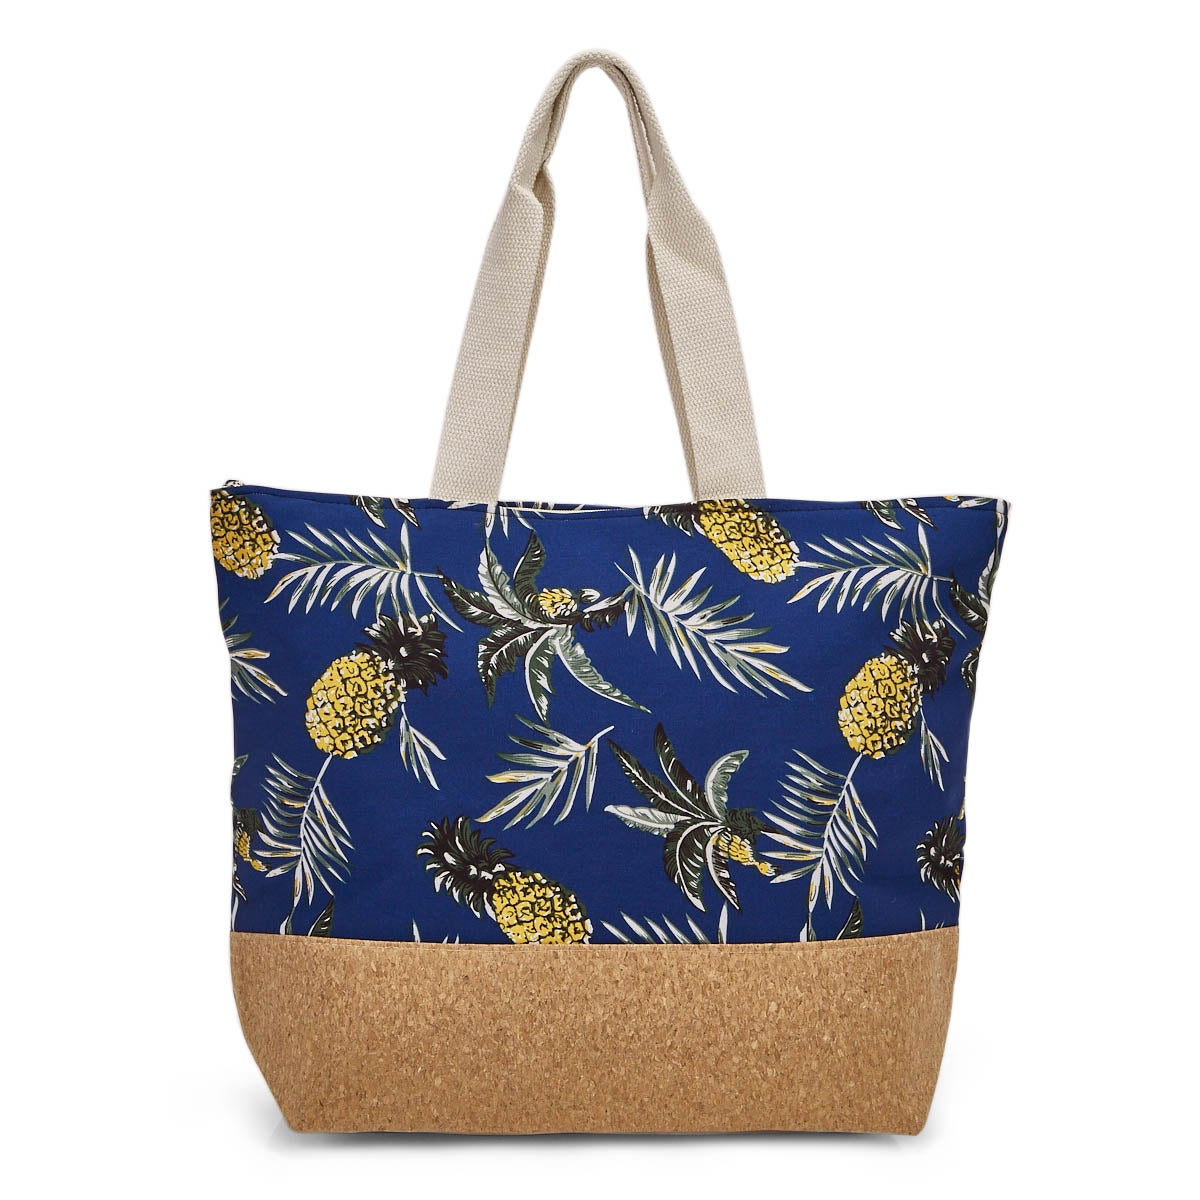 Lds pineapple large tote hand bag